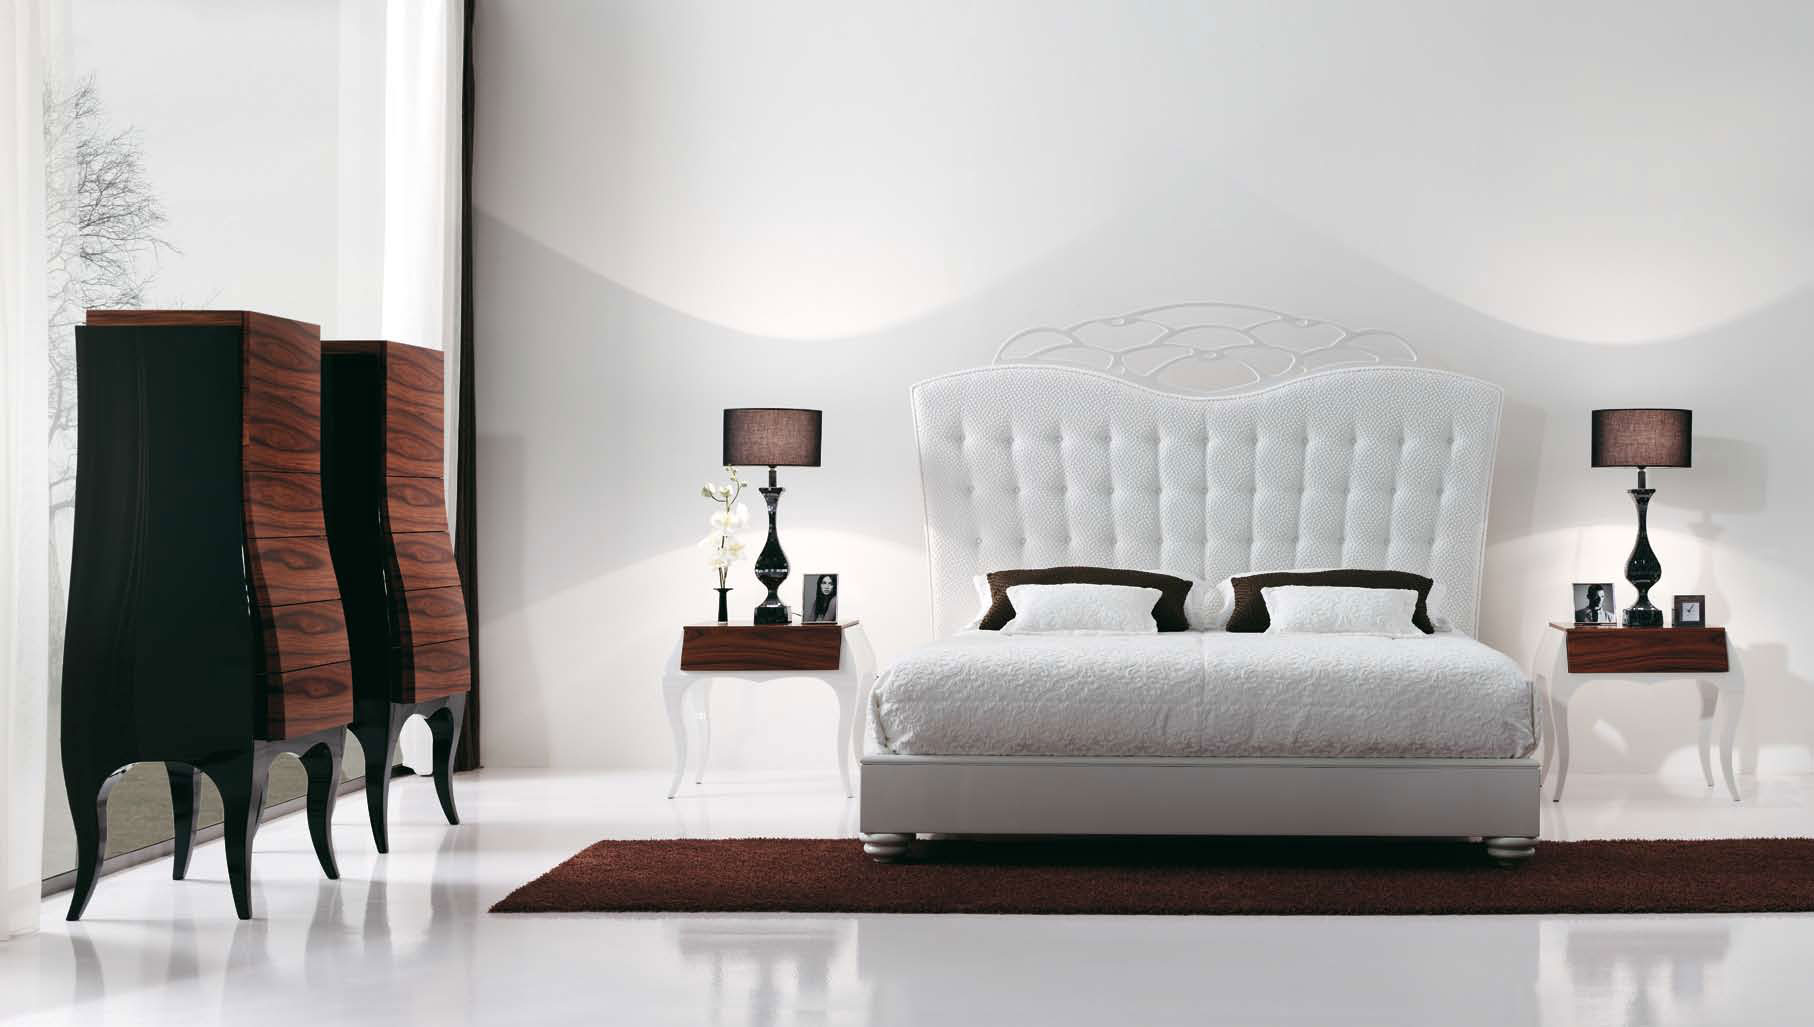 Stunning White Bedroom Furniture Design Ideas 1814 x 1027 · 118 kB · jpeg